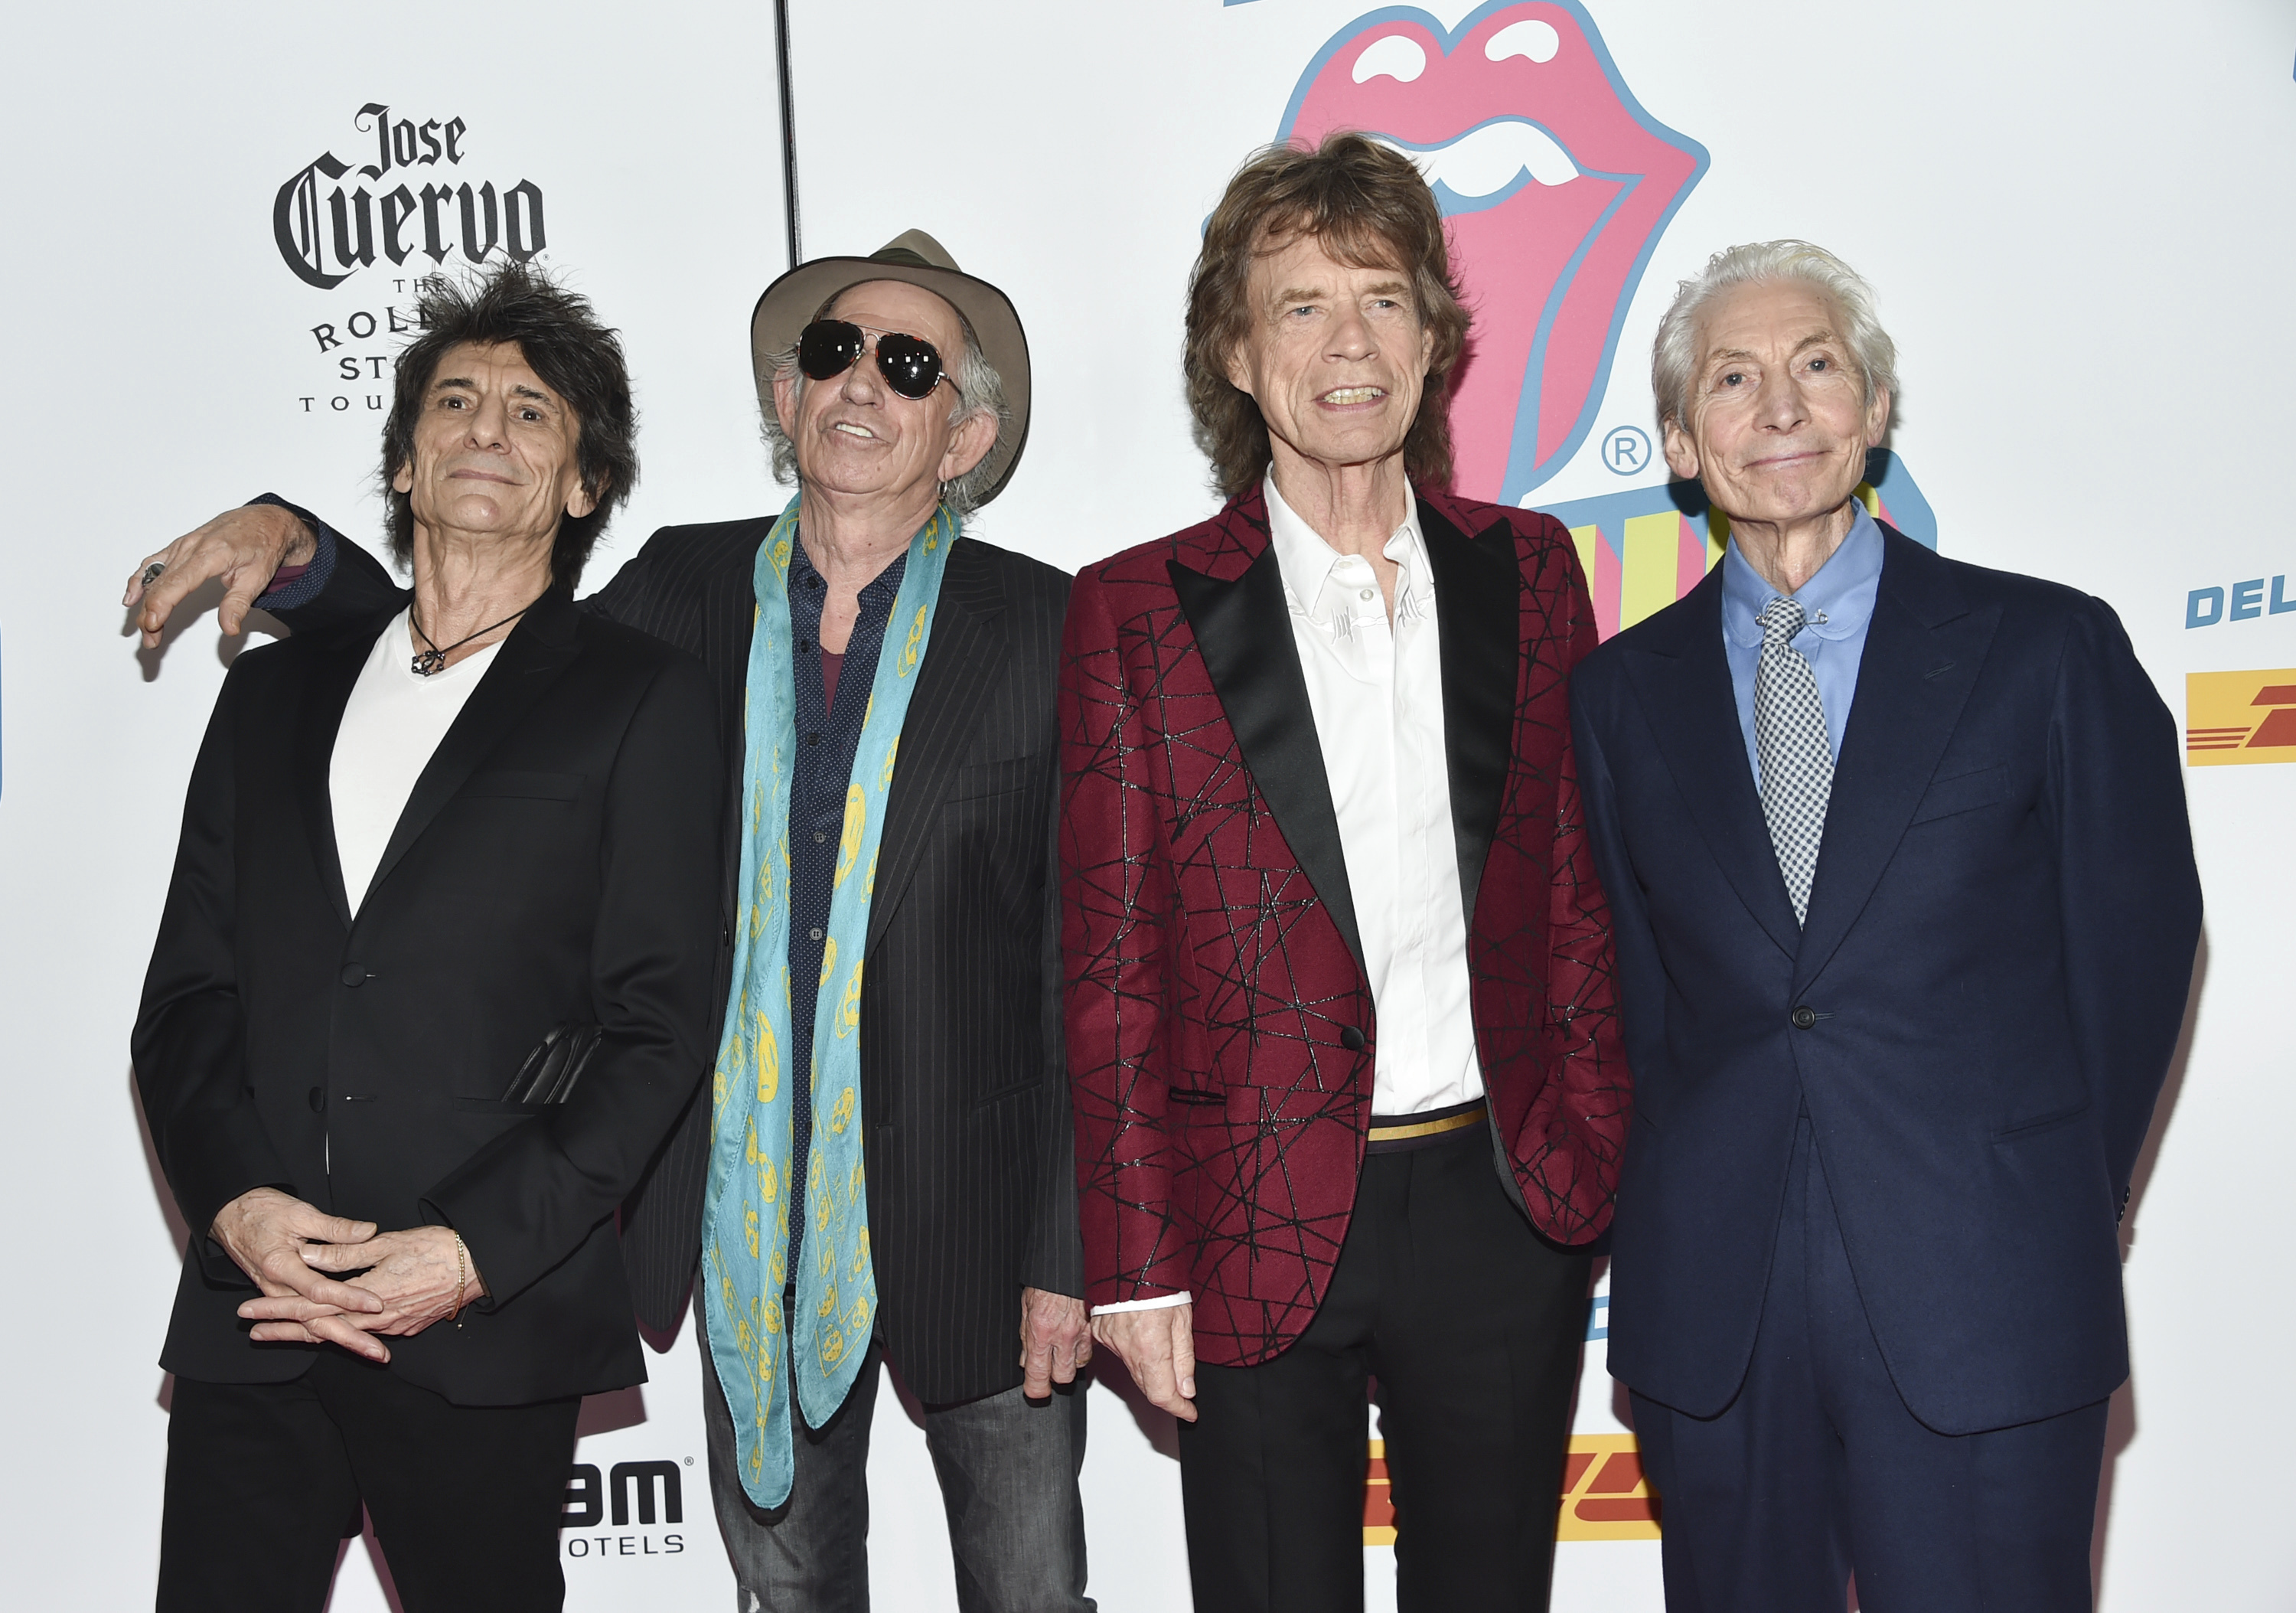 Charlie Watts, Rolling Stones drummer set to miss U.S. tour after  unexpected, 'successful' procedure - Washington Times